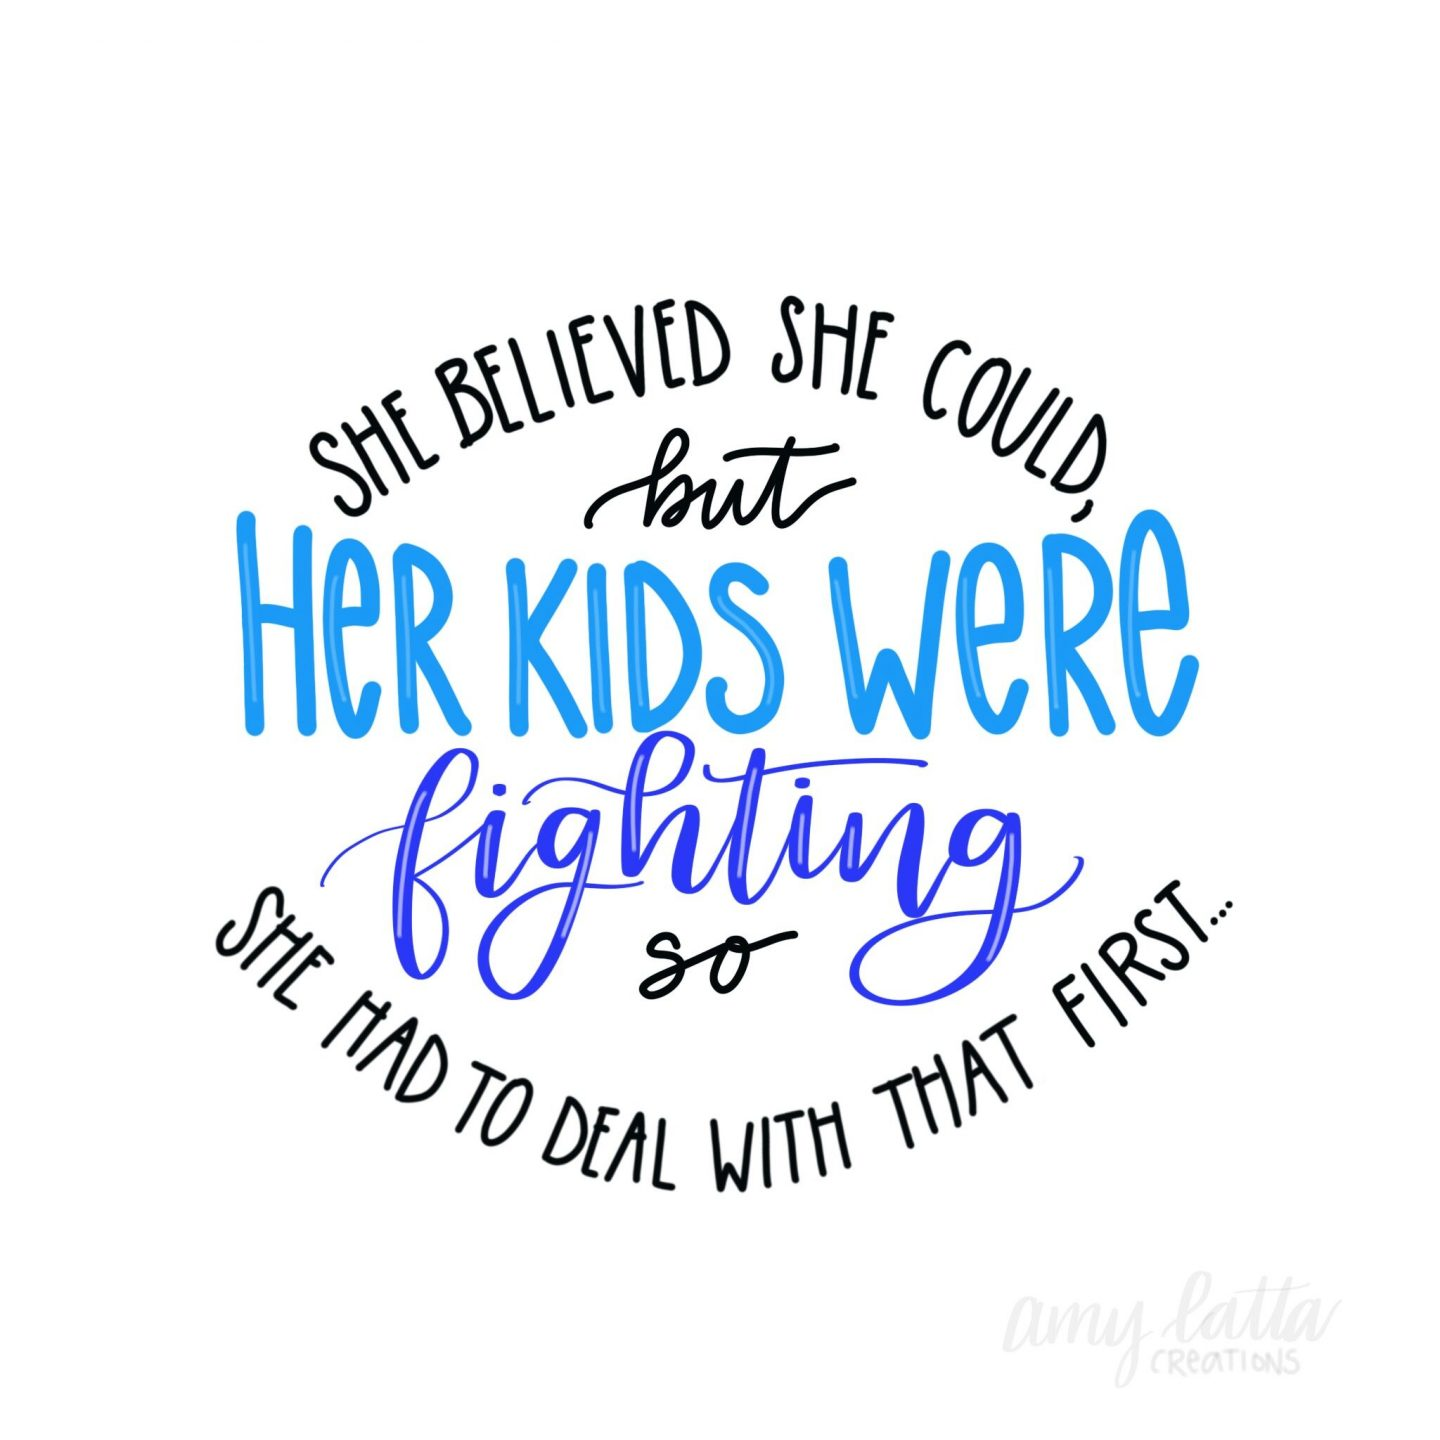 Funny mom humor and quote with handlettering by Amy Latta. #momhumor #amylatta #handlettering #funnyquote